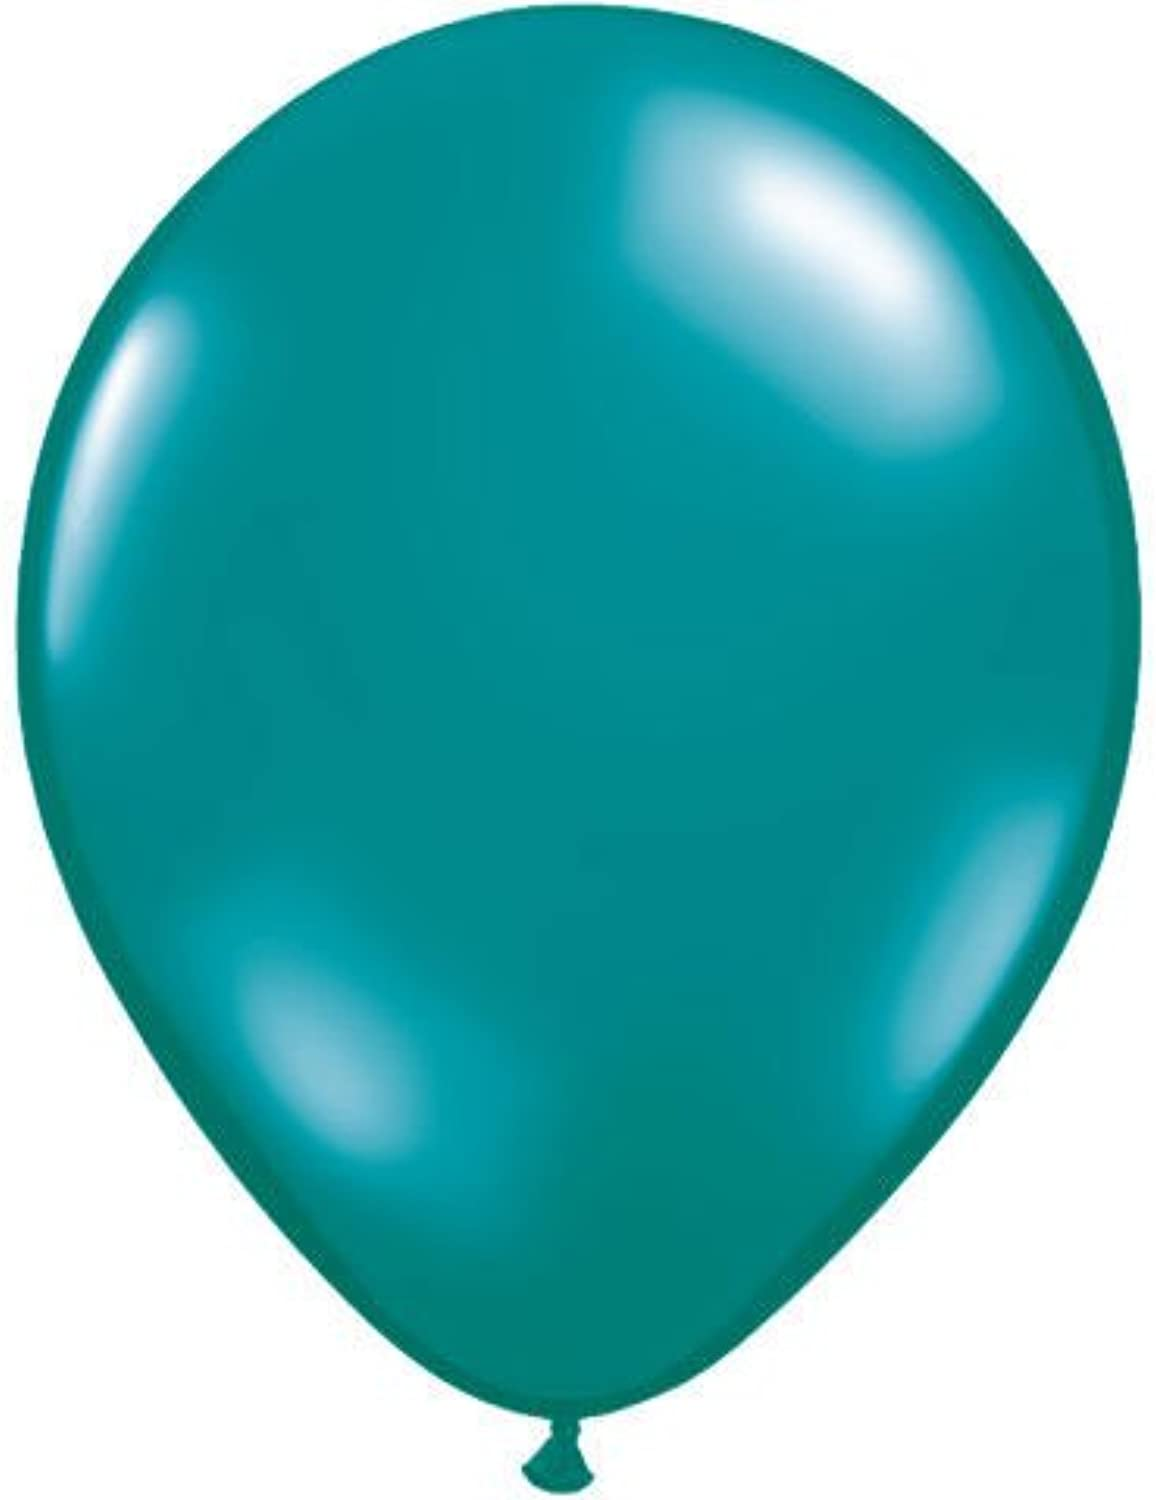 16 Teal Jewel Tone Balloons (10 ct) (10 per package) by Qualatex